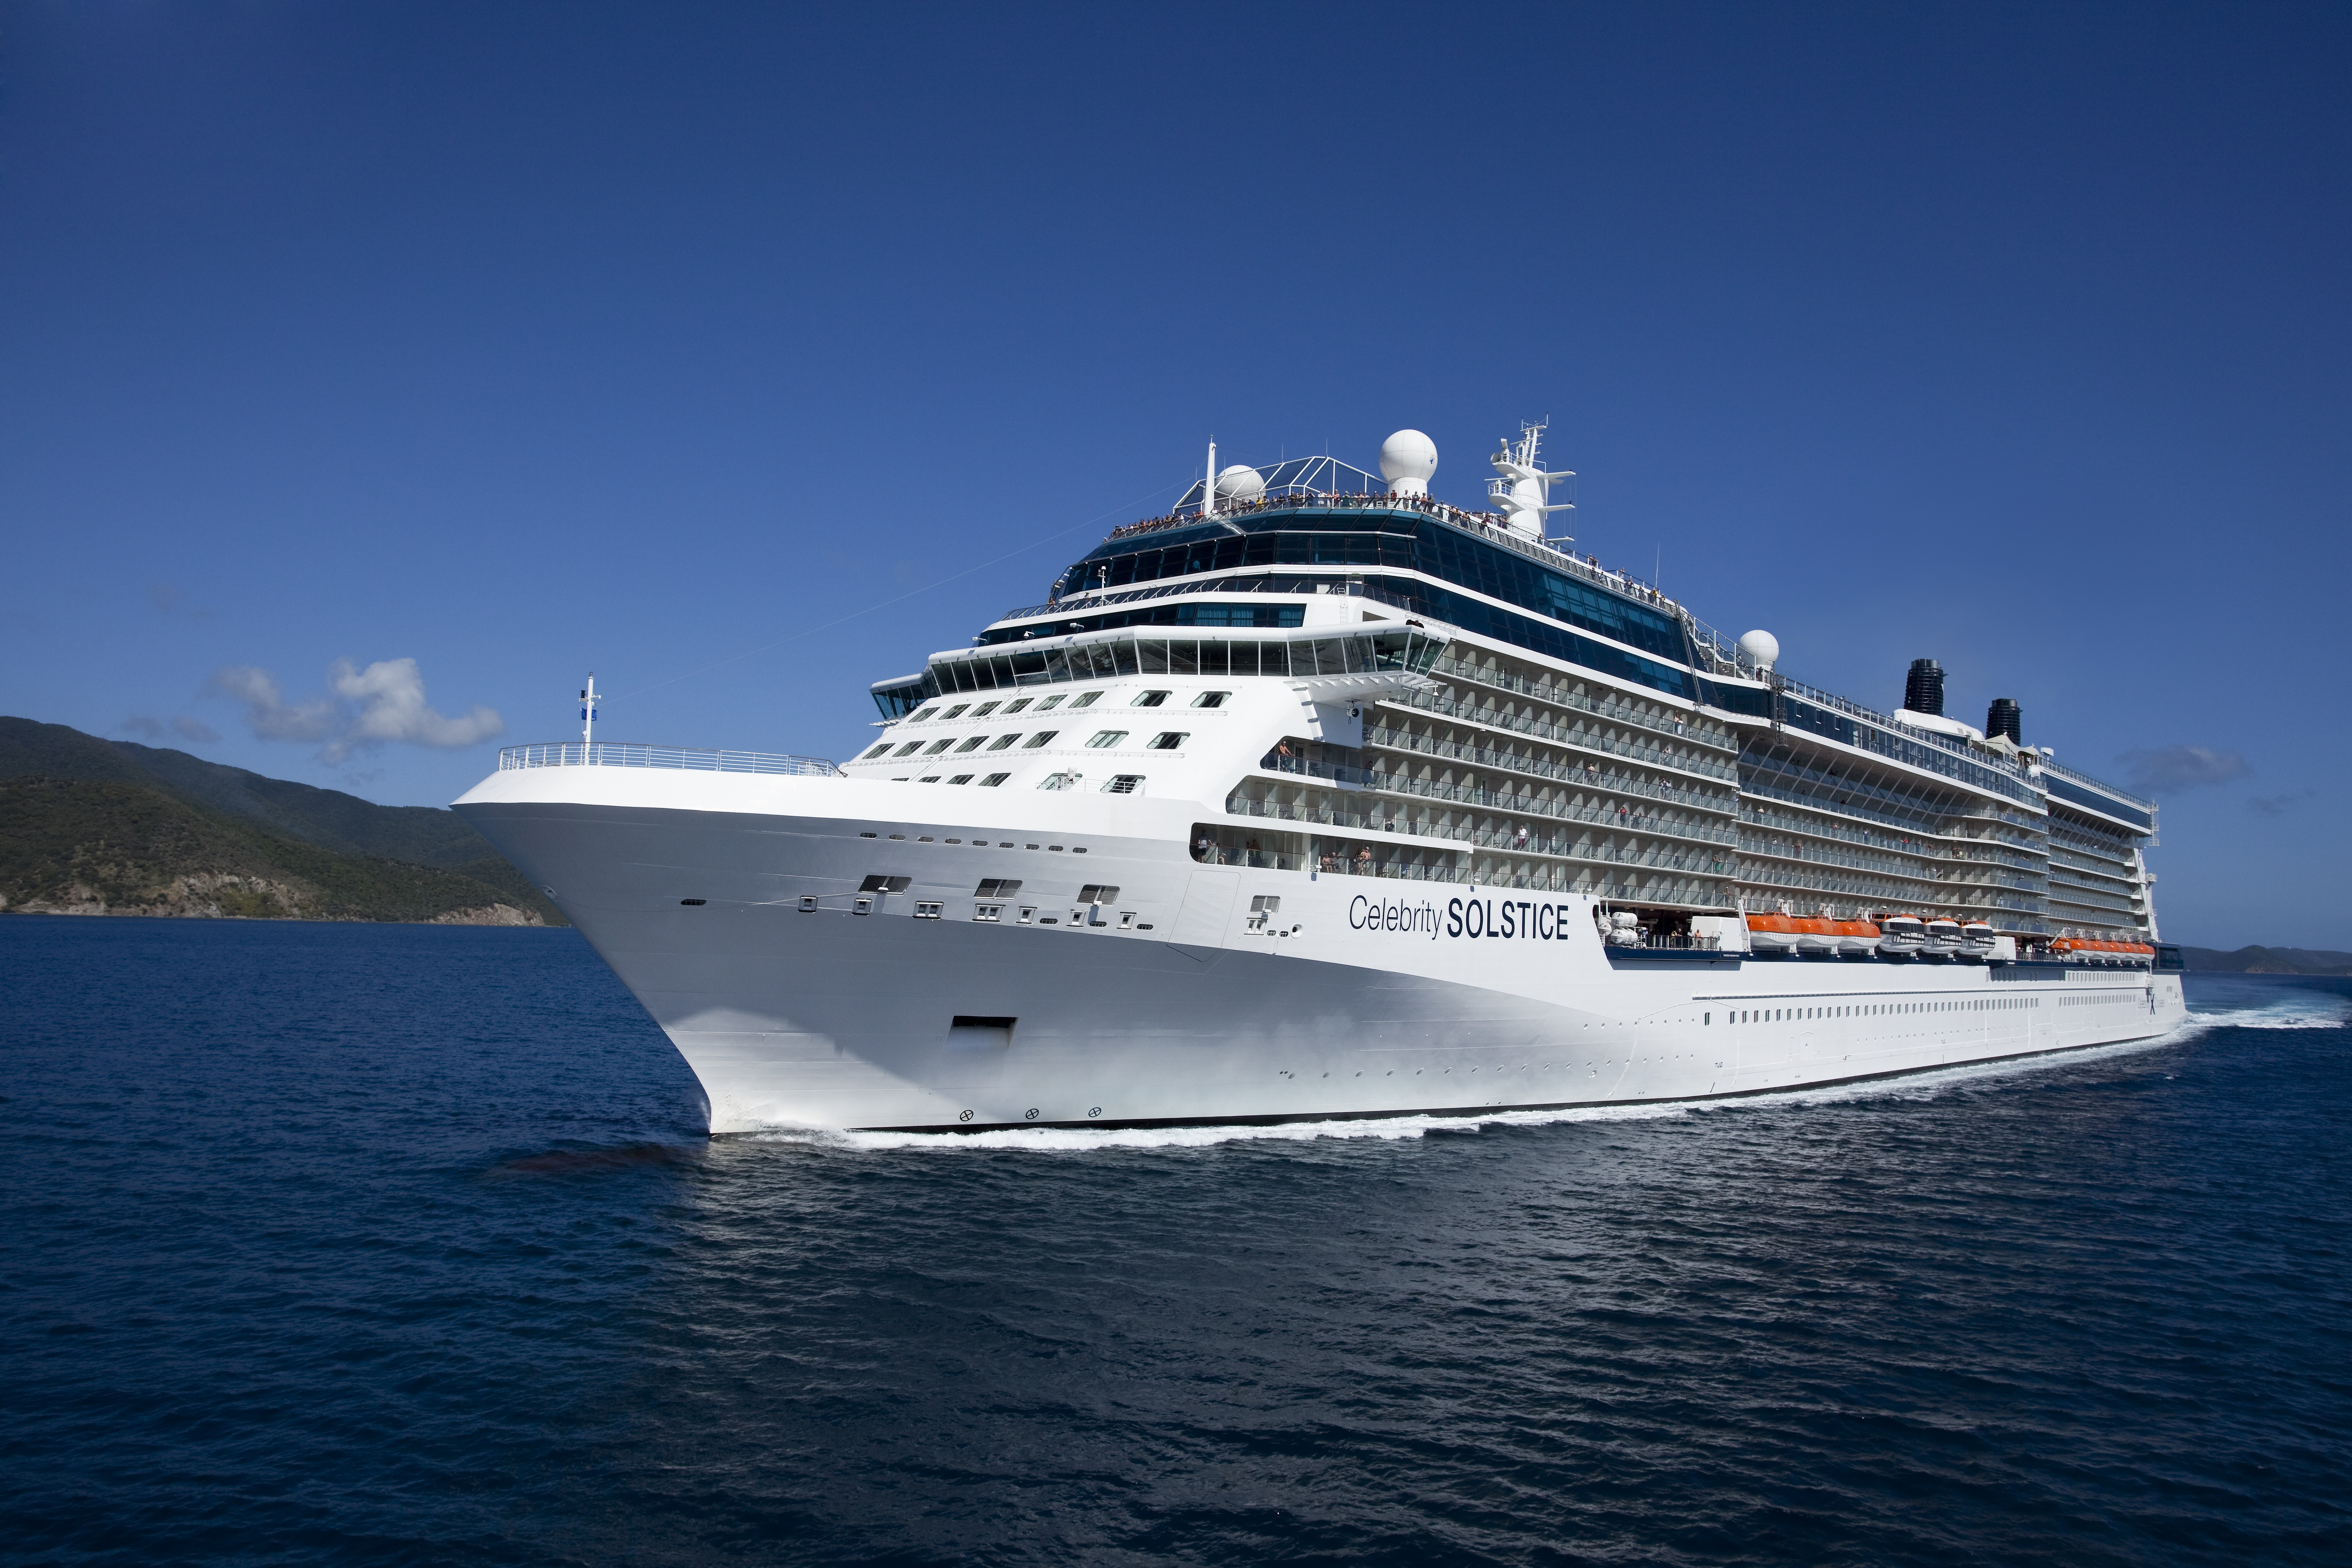 Celebrity solstice cruise ship statistics